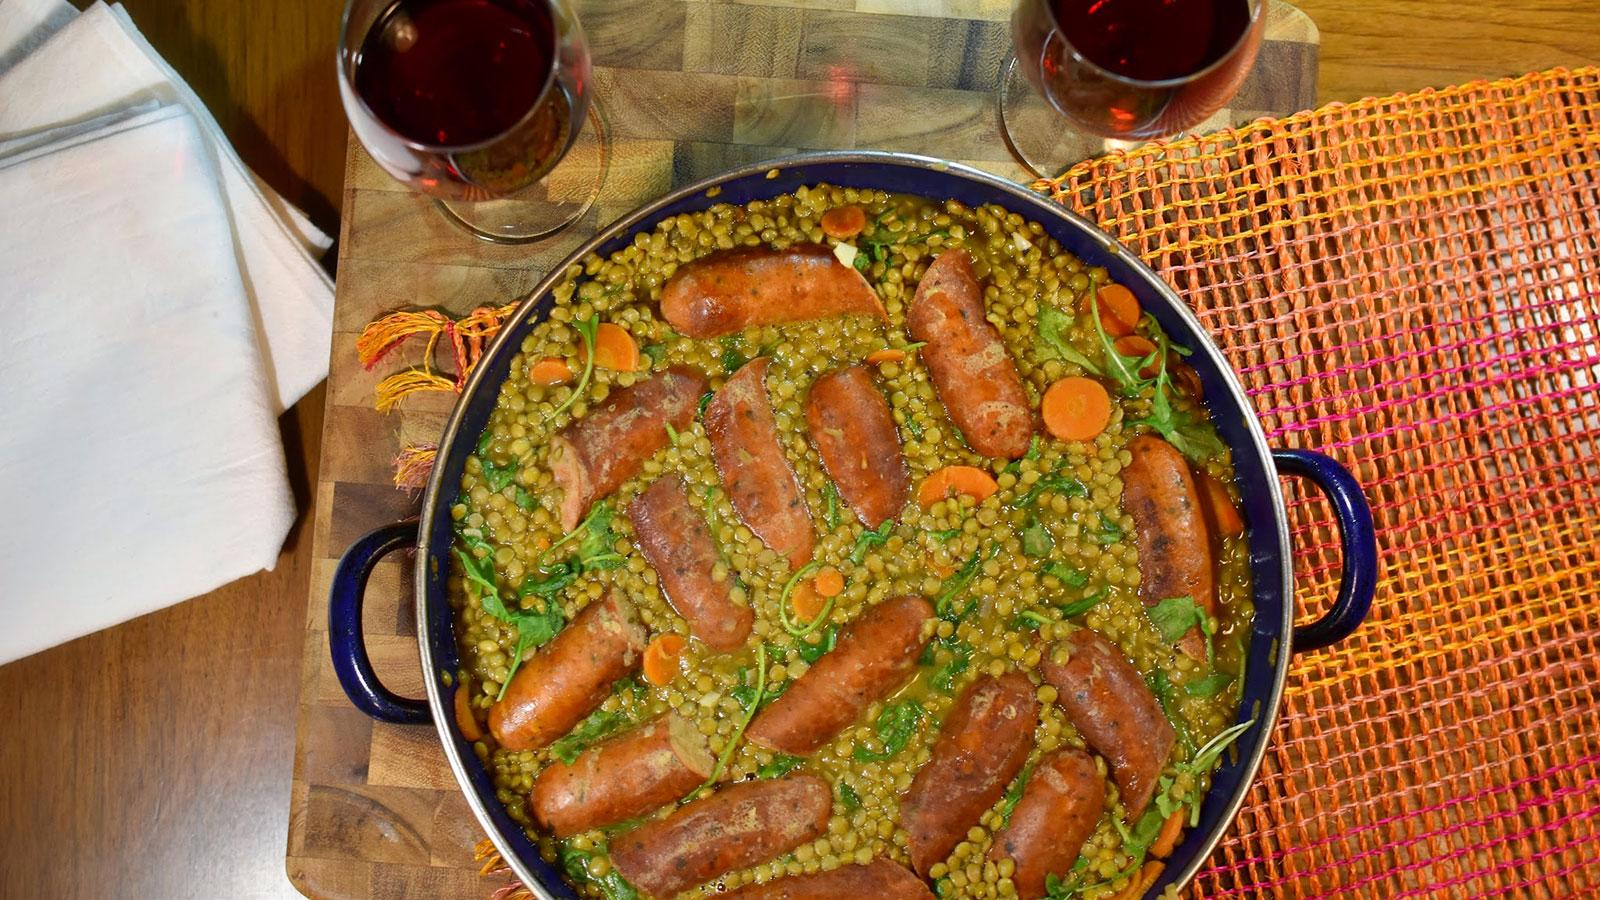 8 & $20: Lentils with Sausages and Arugula